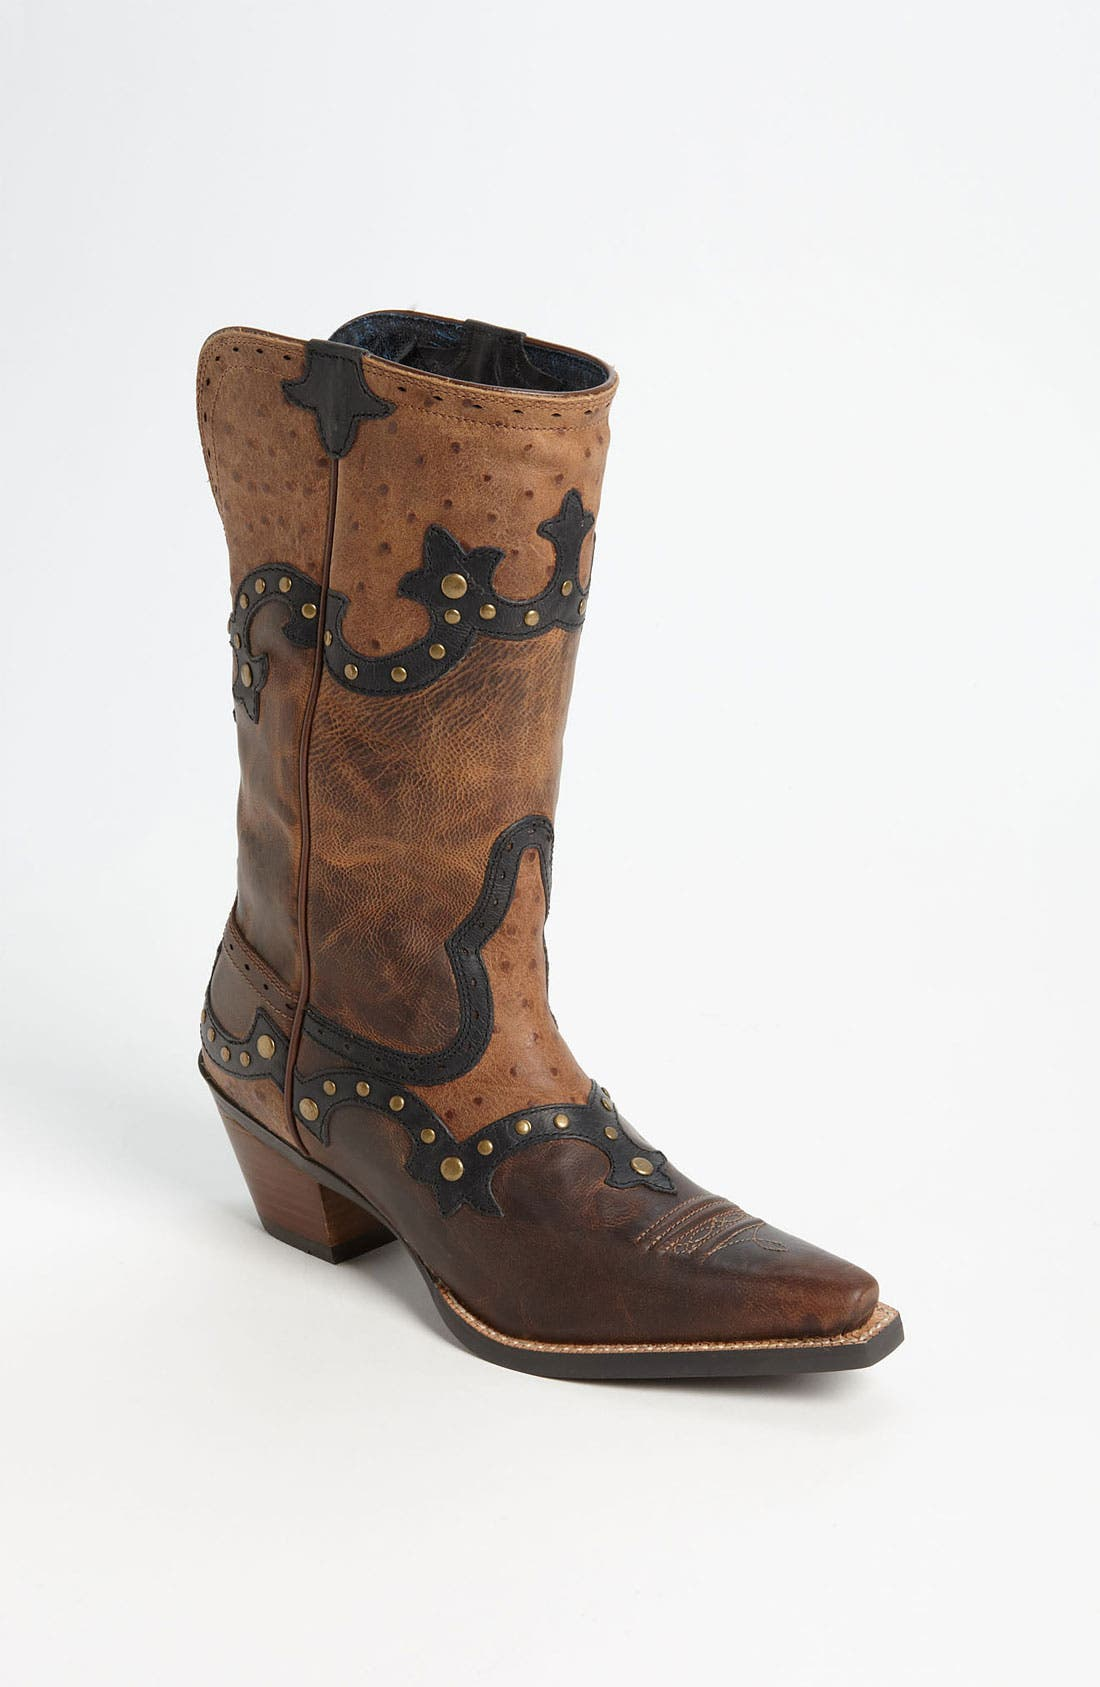 Alternate Image 1 Selected - Ariat 'Rogue' Boot